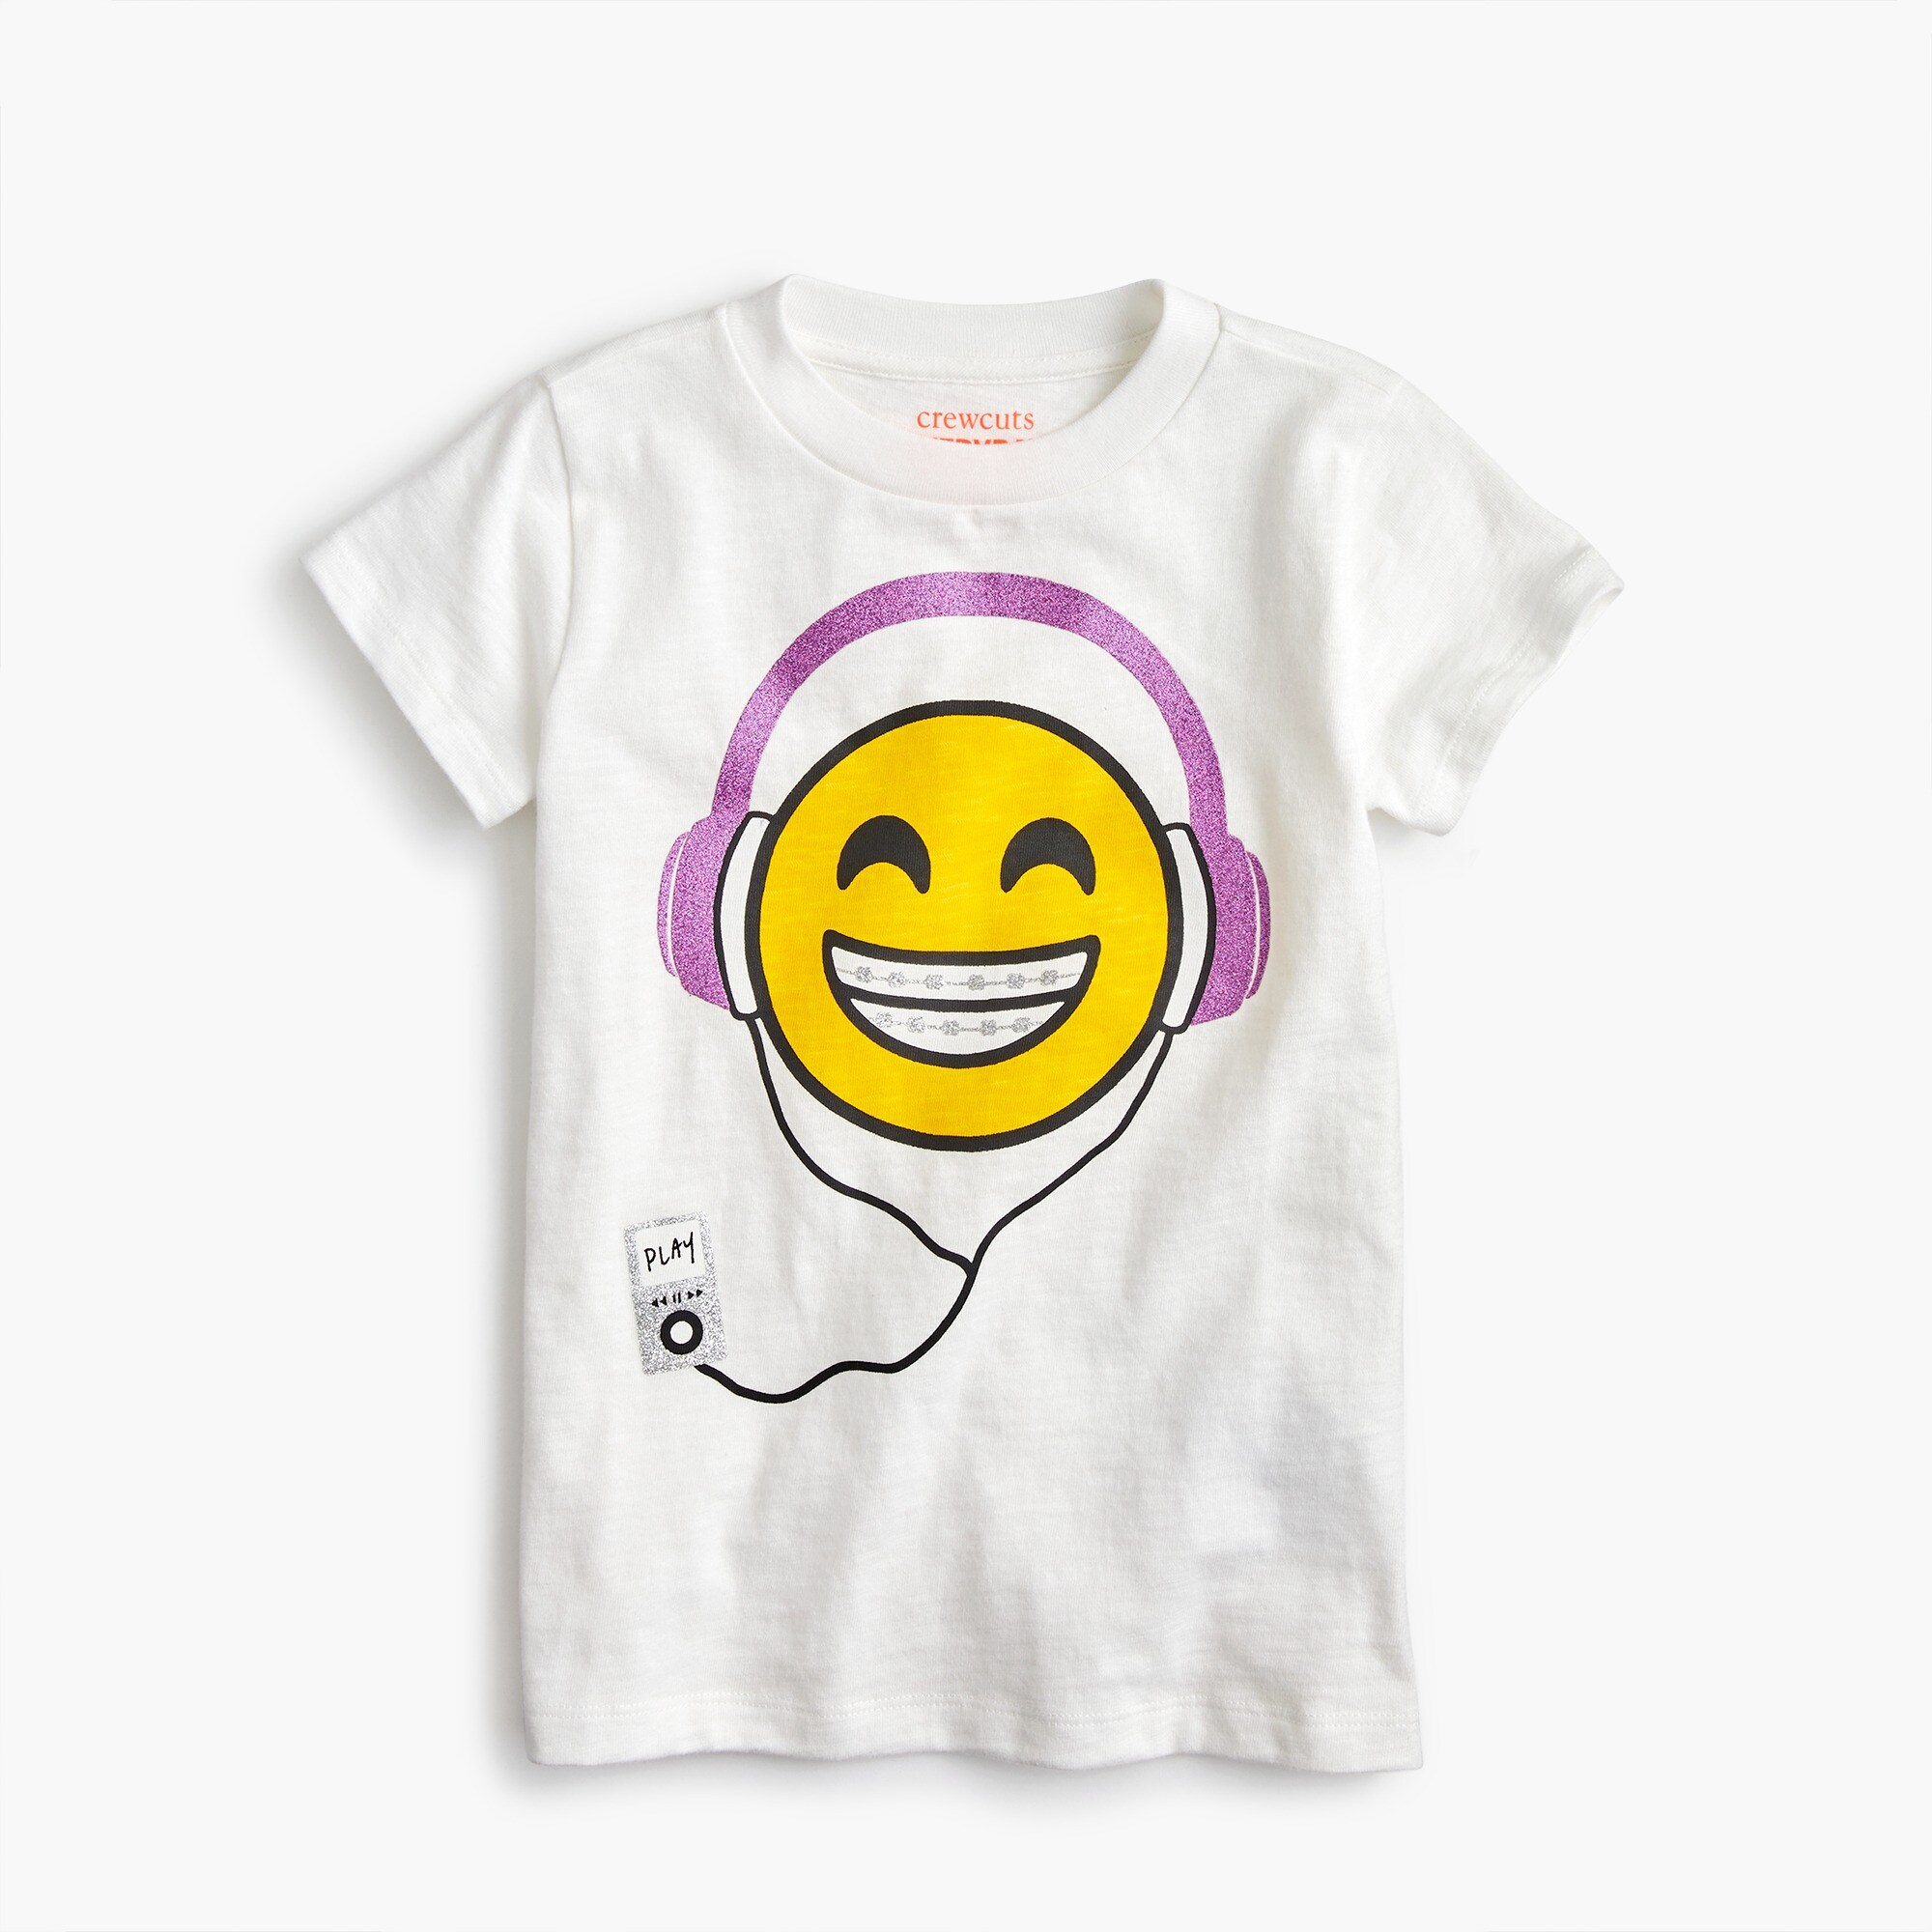 Girls' headphone-wearing emoji T-shirt